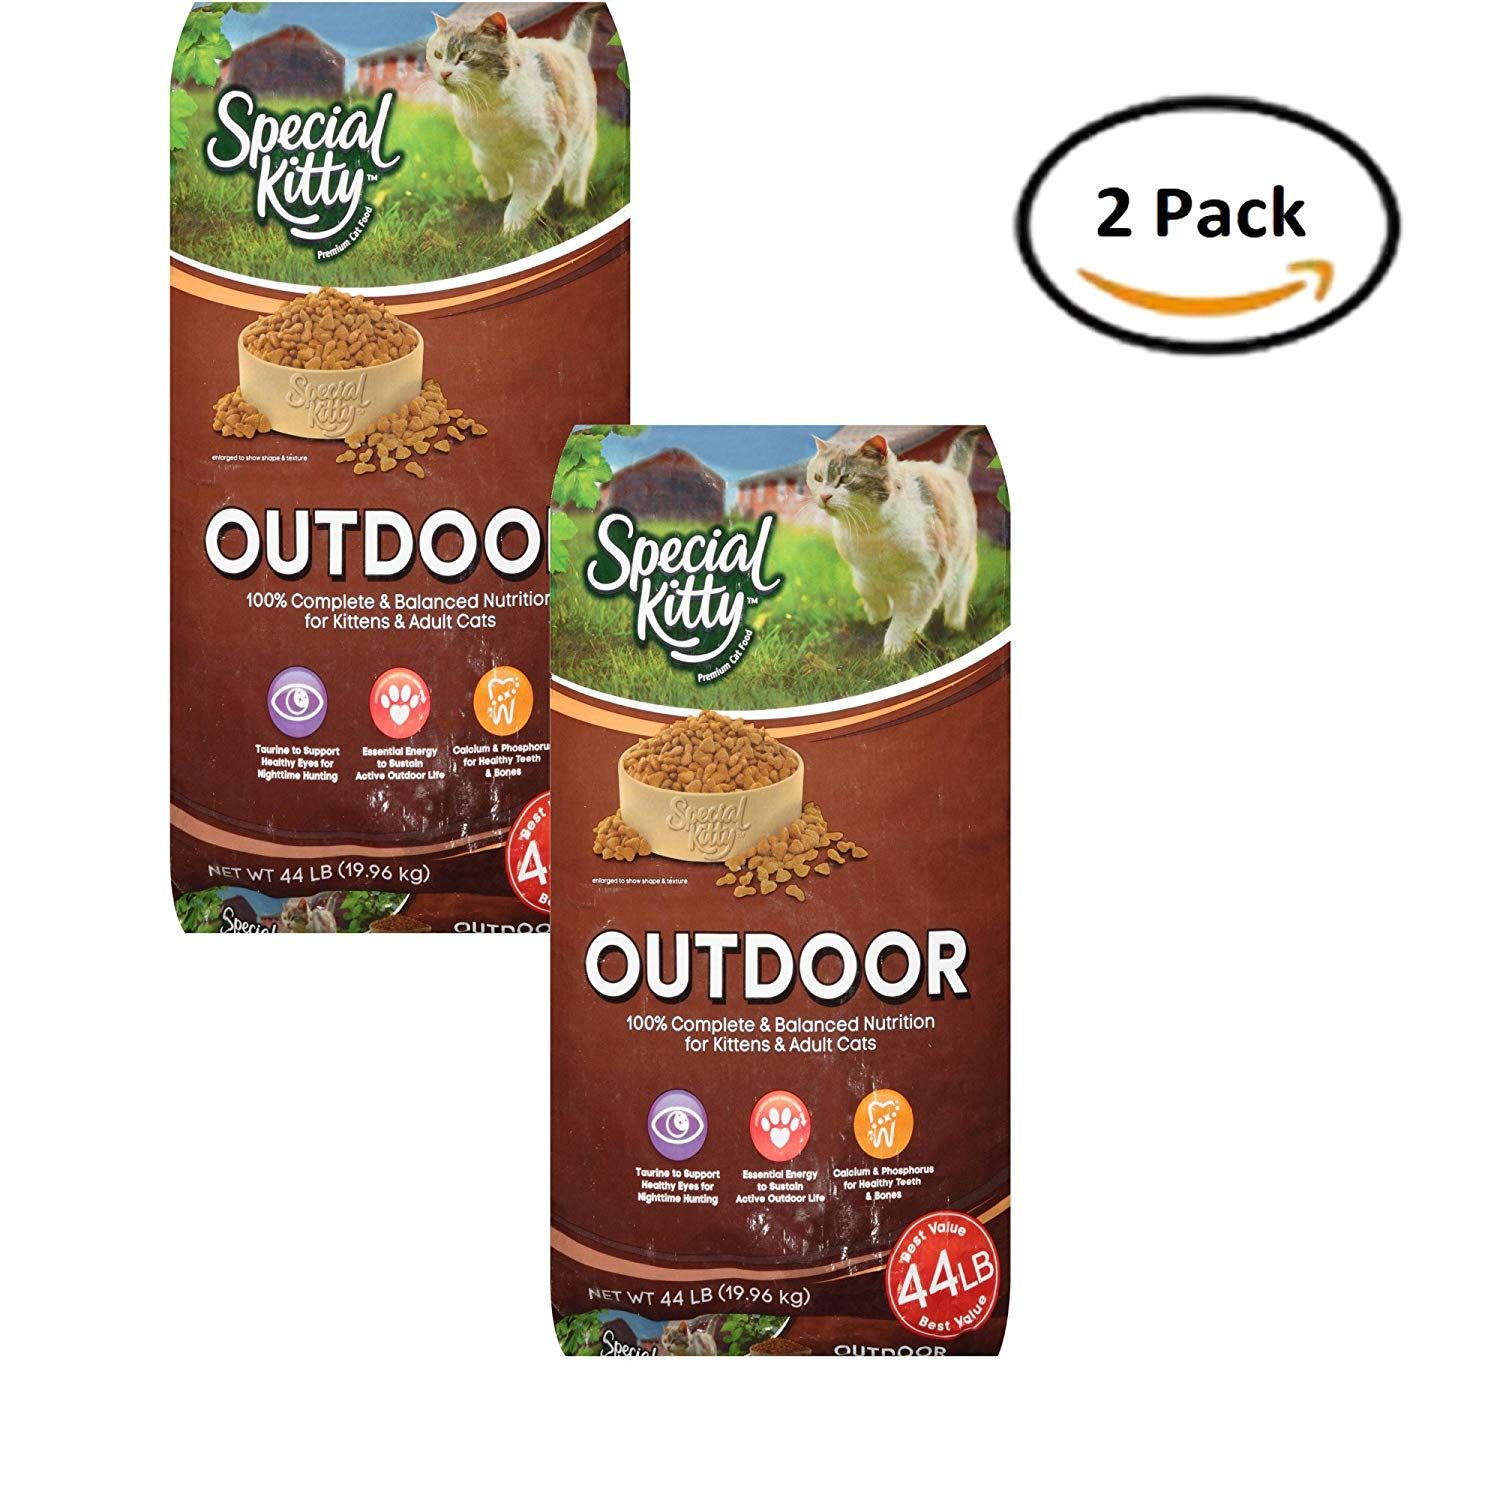 PACK OF 2 Special Kitty Outdoor Dry Cat Food 44 lb. Bag